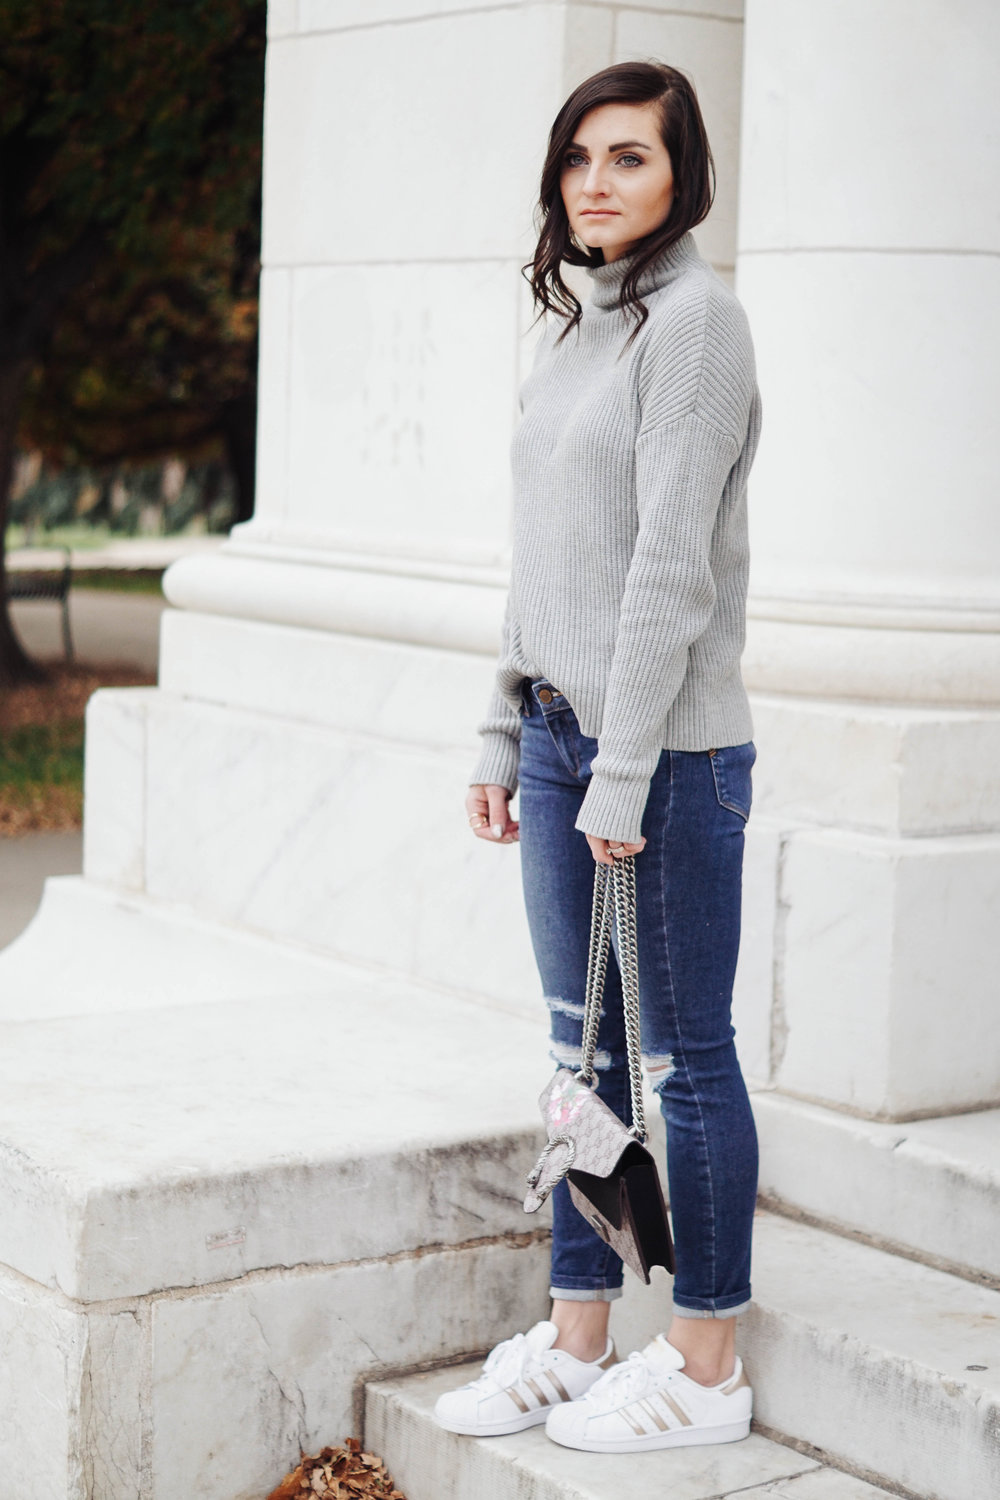 Mock Neck Sweater  //  Paige Denim , similar  HERE  //  Sneakers , similar  HERE  //  Bag